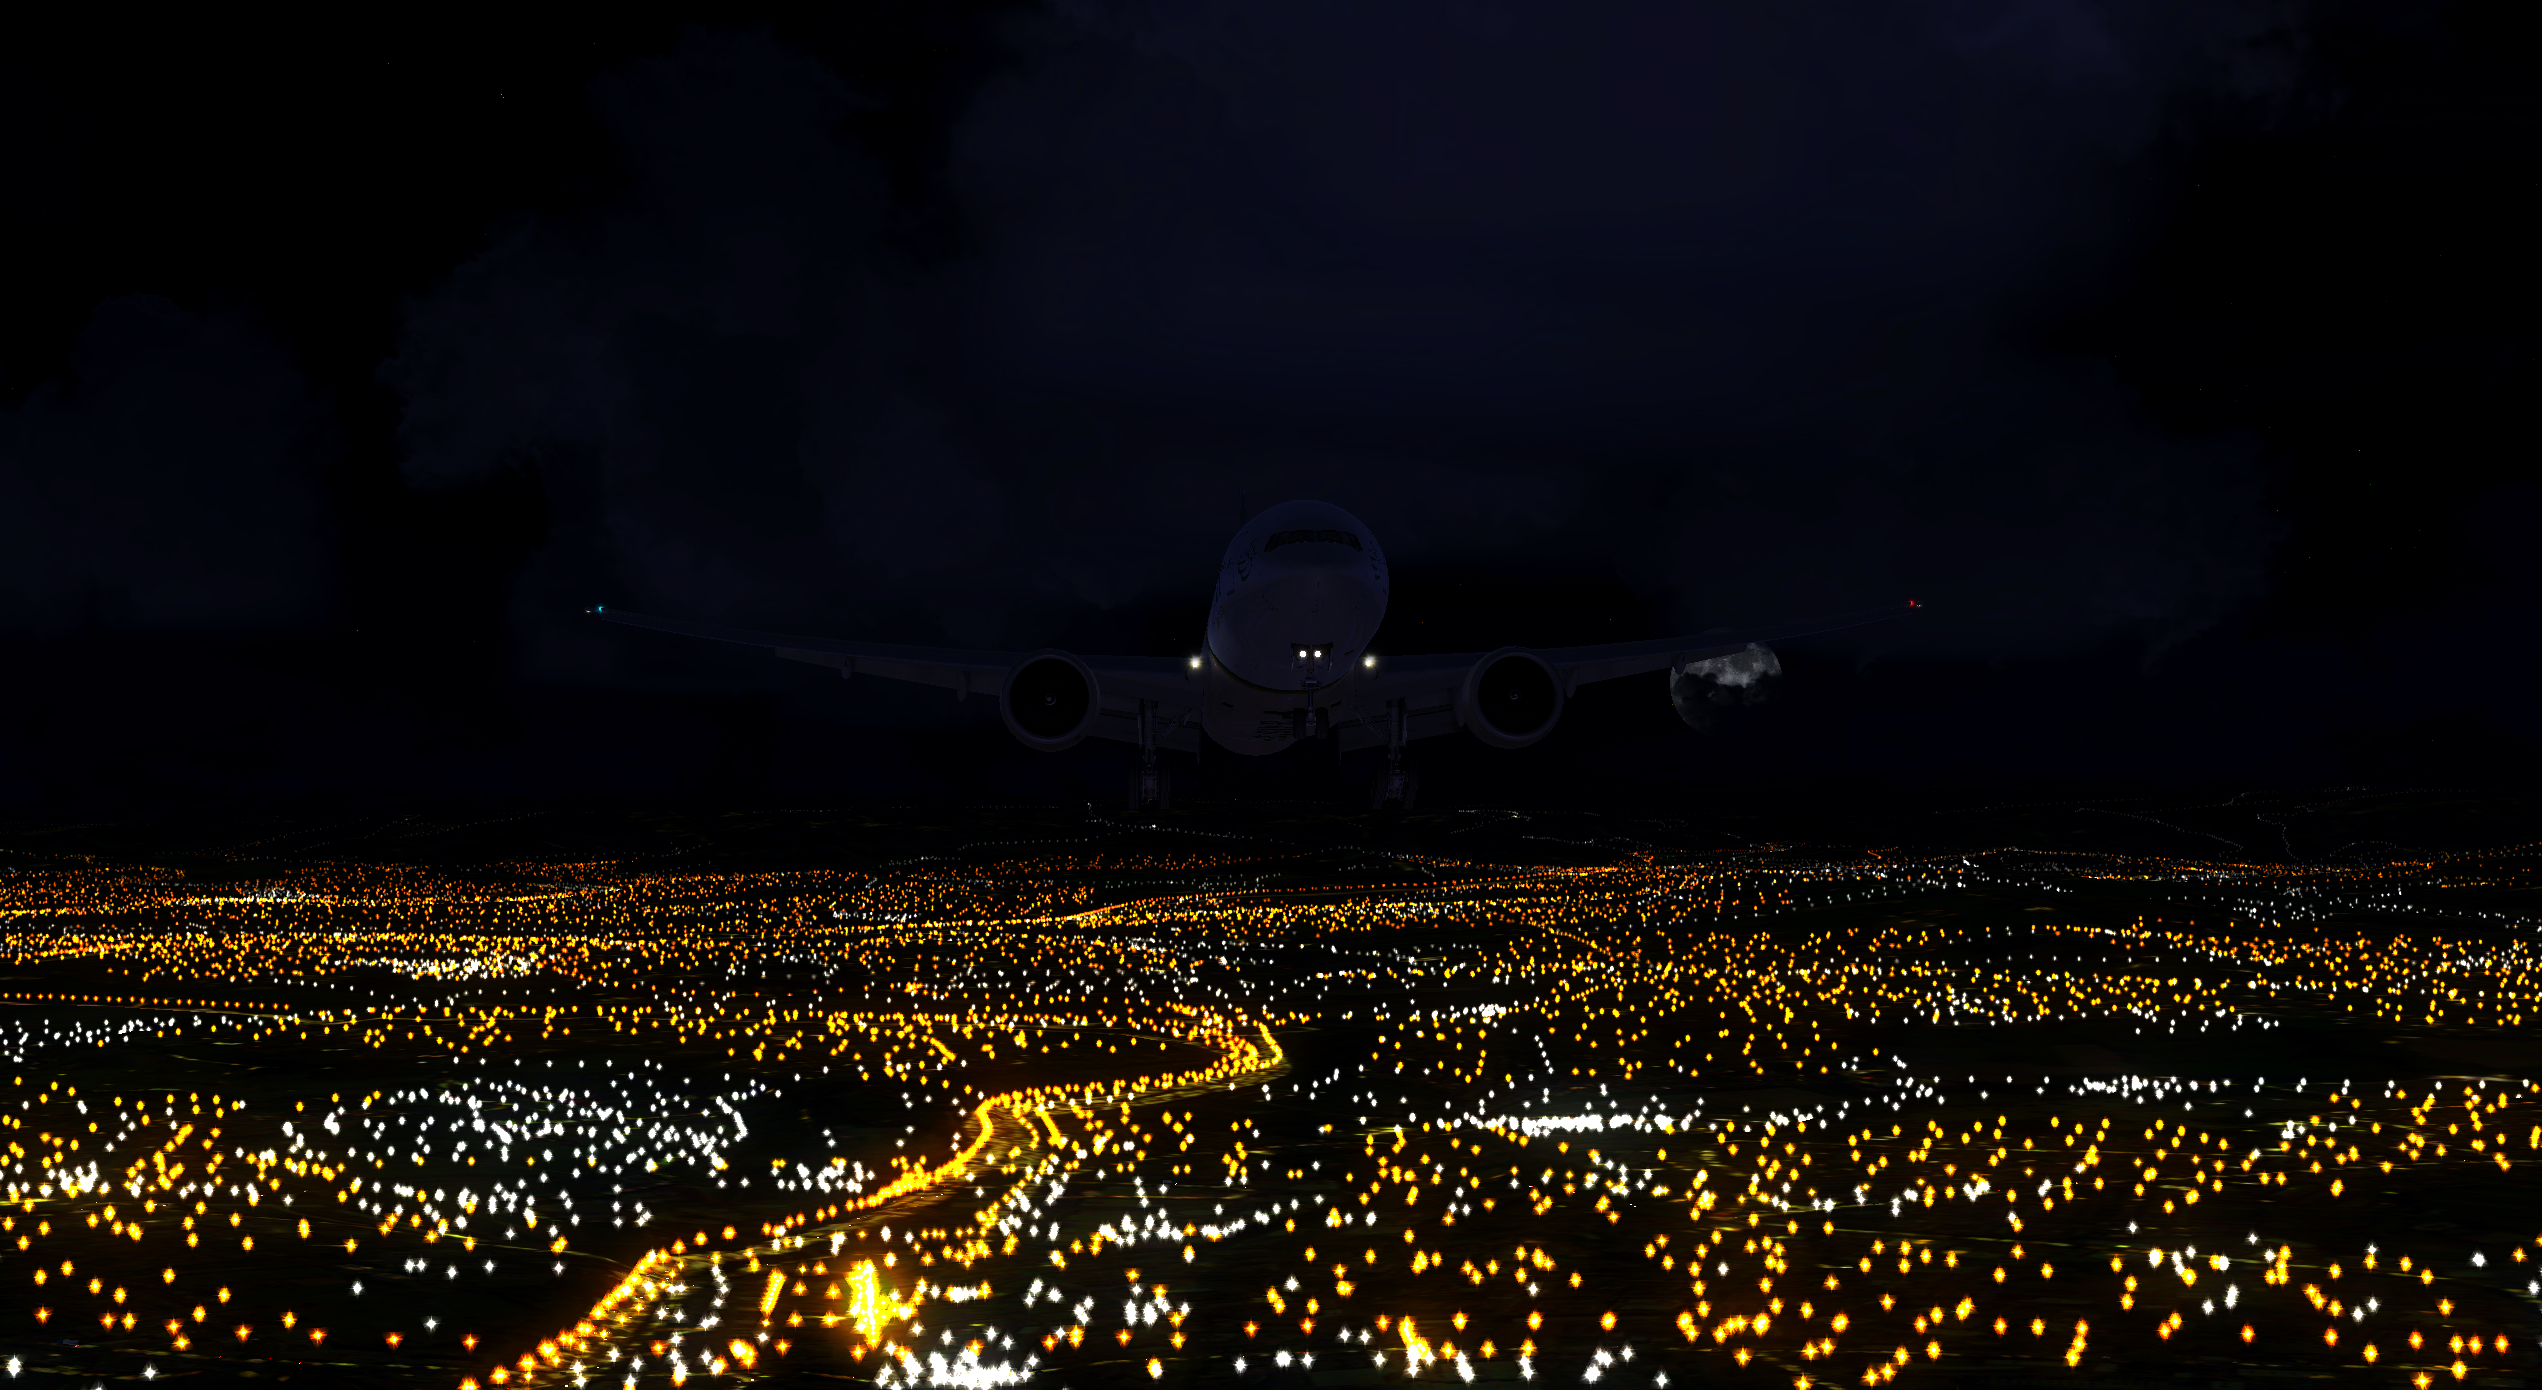 fsx%202014-12-06%2017-32-23-58.png?dl=0